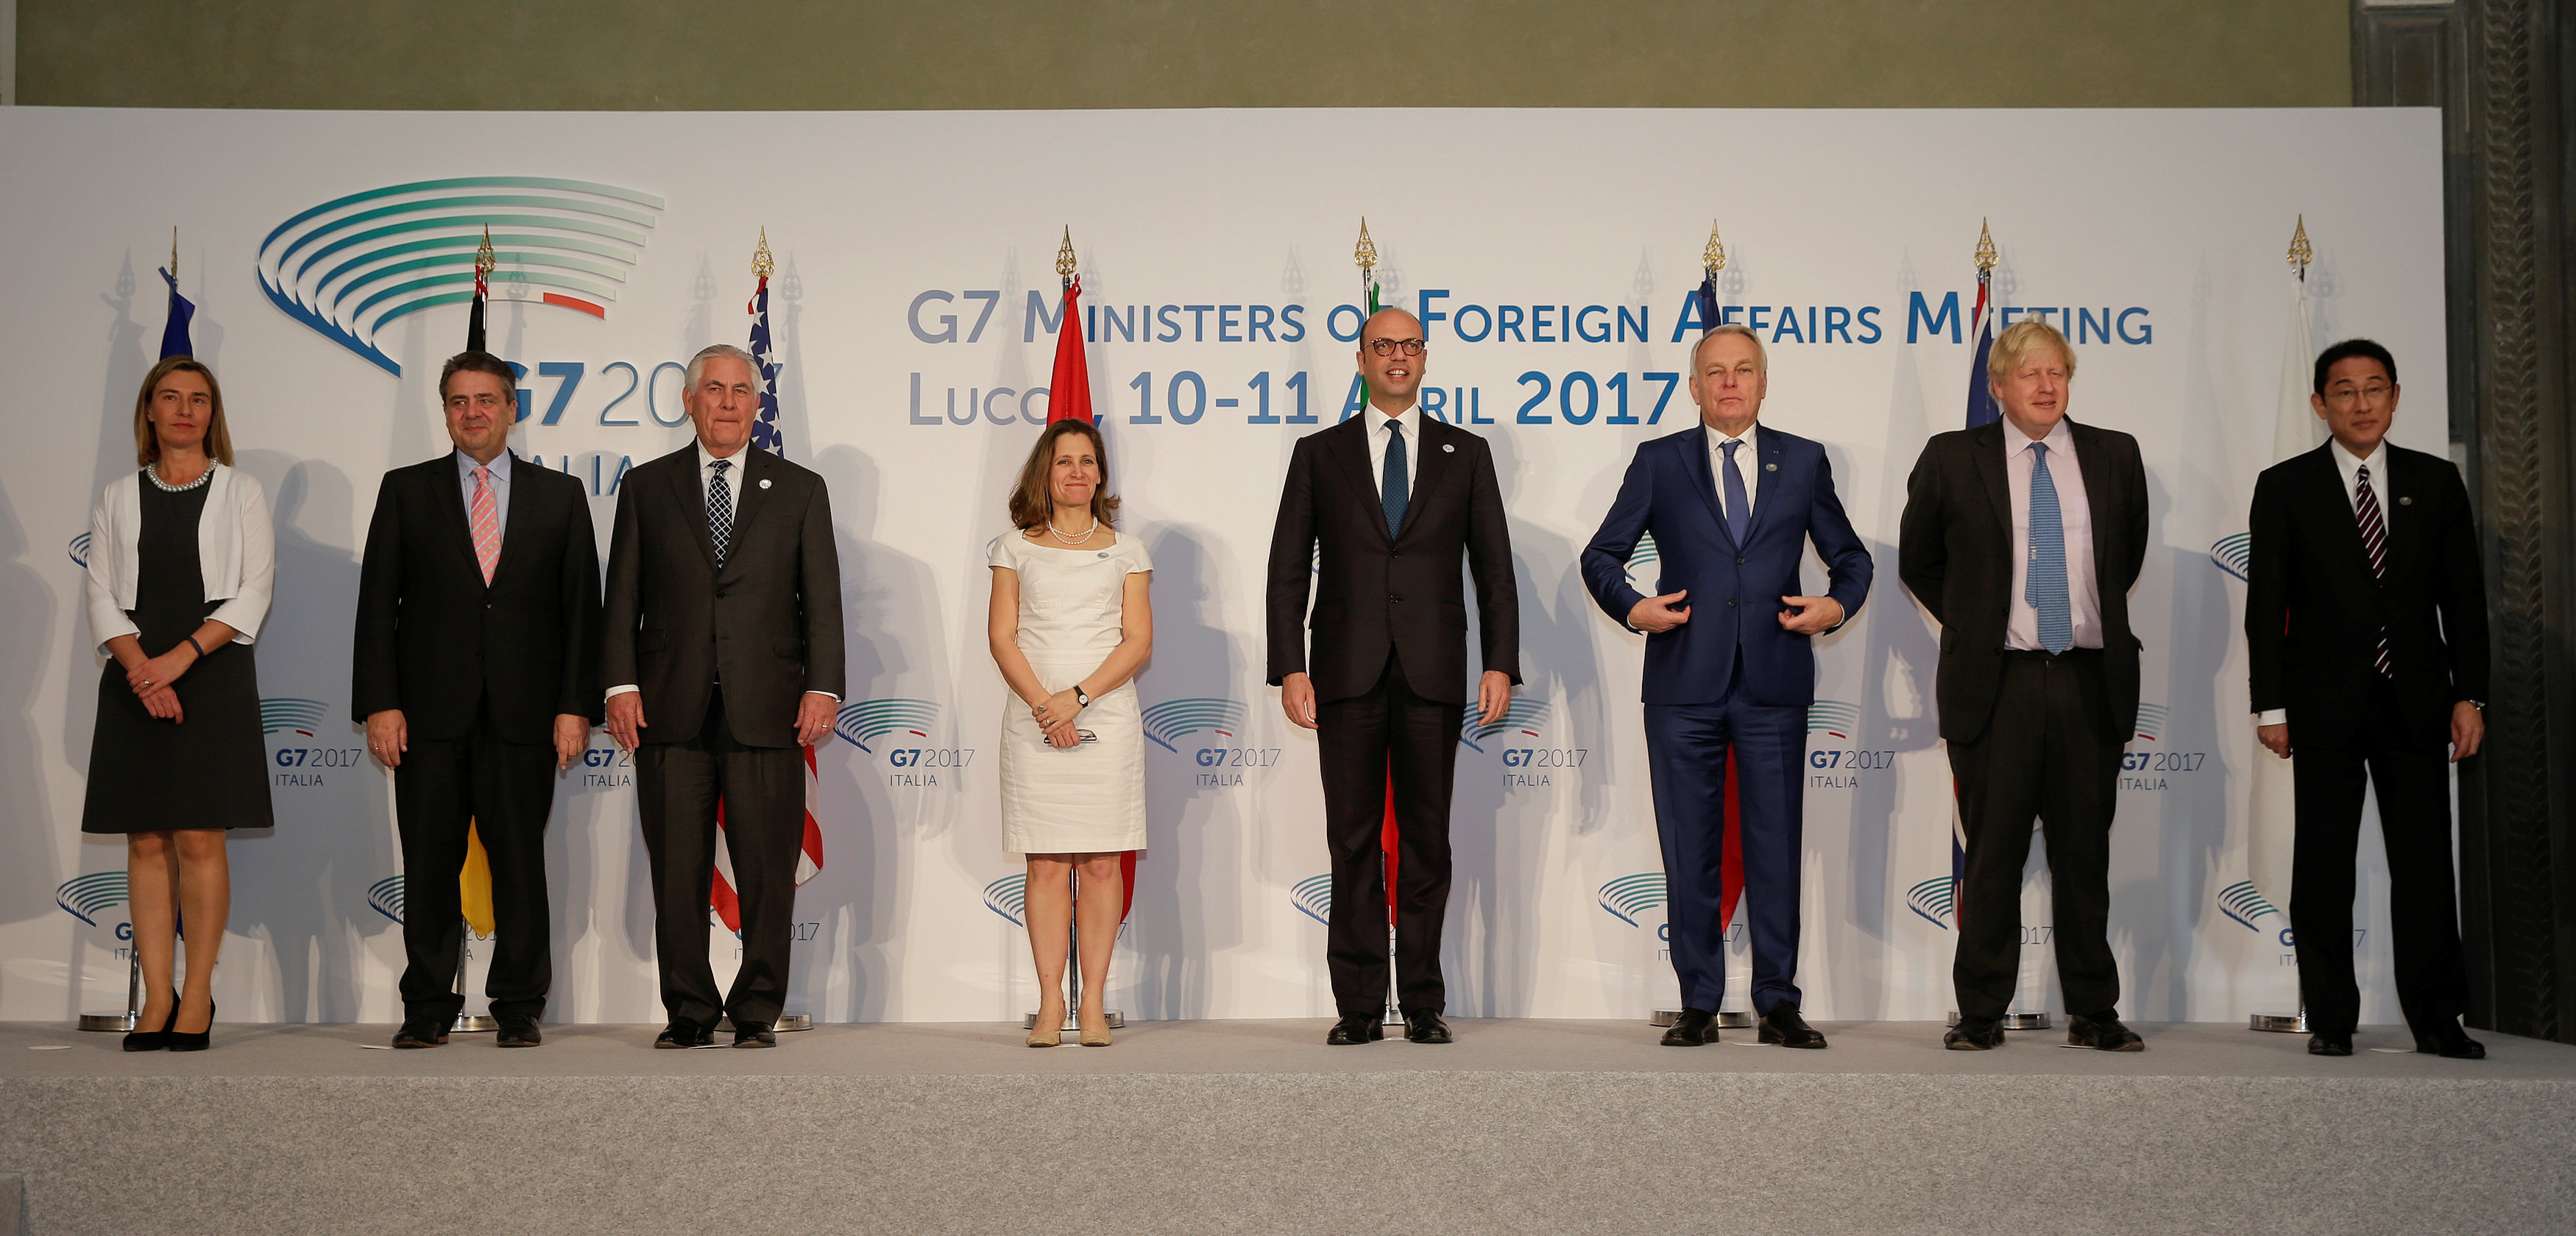 (L-R) E.U. High Representative for Foreign Affairs Federica Mogherini, German Foreign Minister Sigmar Gabriel, U.S. Secretary of State Rex Tillerson, Canada's Foreign Affairs Minister Chrystia Freeland, Italy's Foreign Minister Angelino Alfano, France's Foreign Minister Jean-Marc Ayrault, Britain's Foreign Secretary Boris Johnson, and Japanese Minister of Foreign Affairs Fumio Kishida pose for a family photo during a G7 for foreign ministers in Lucca, Italy April 11, 2017. REUTERS/Max Rossi